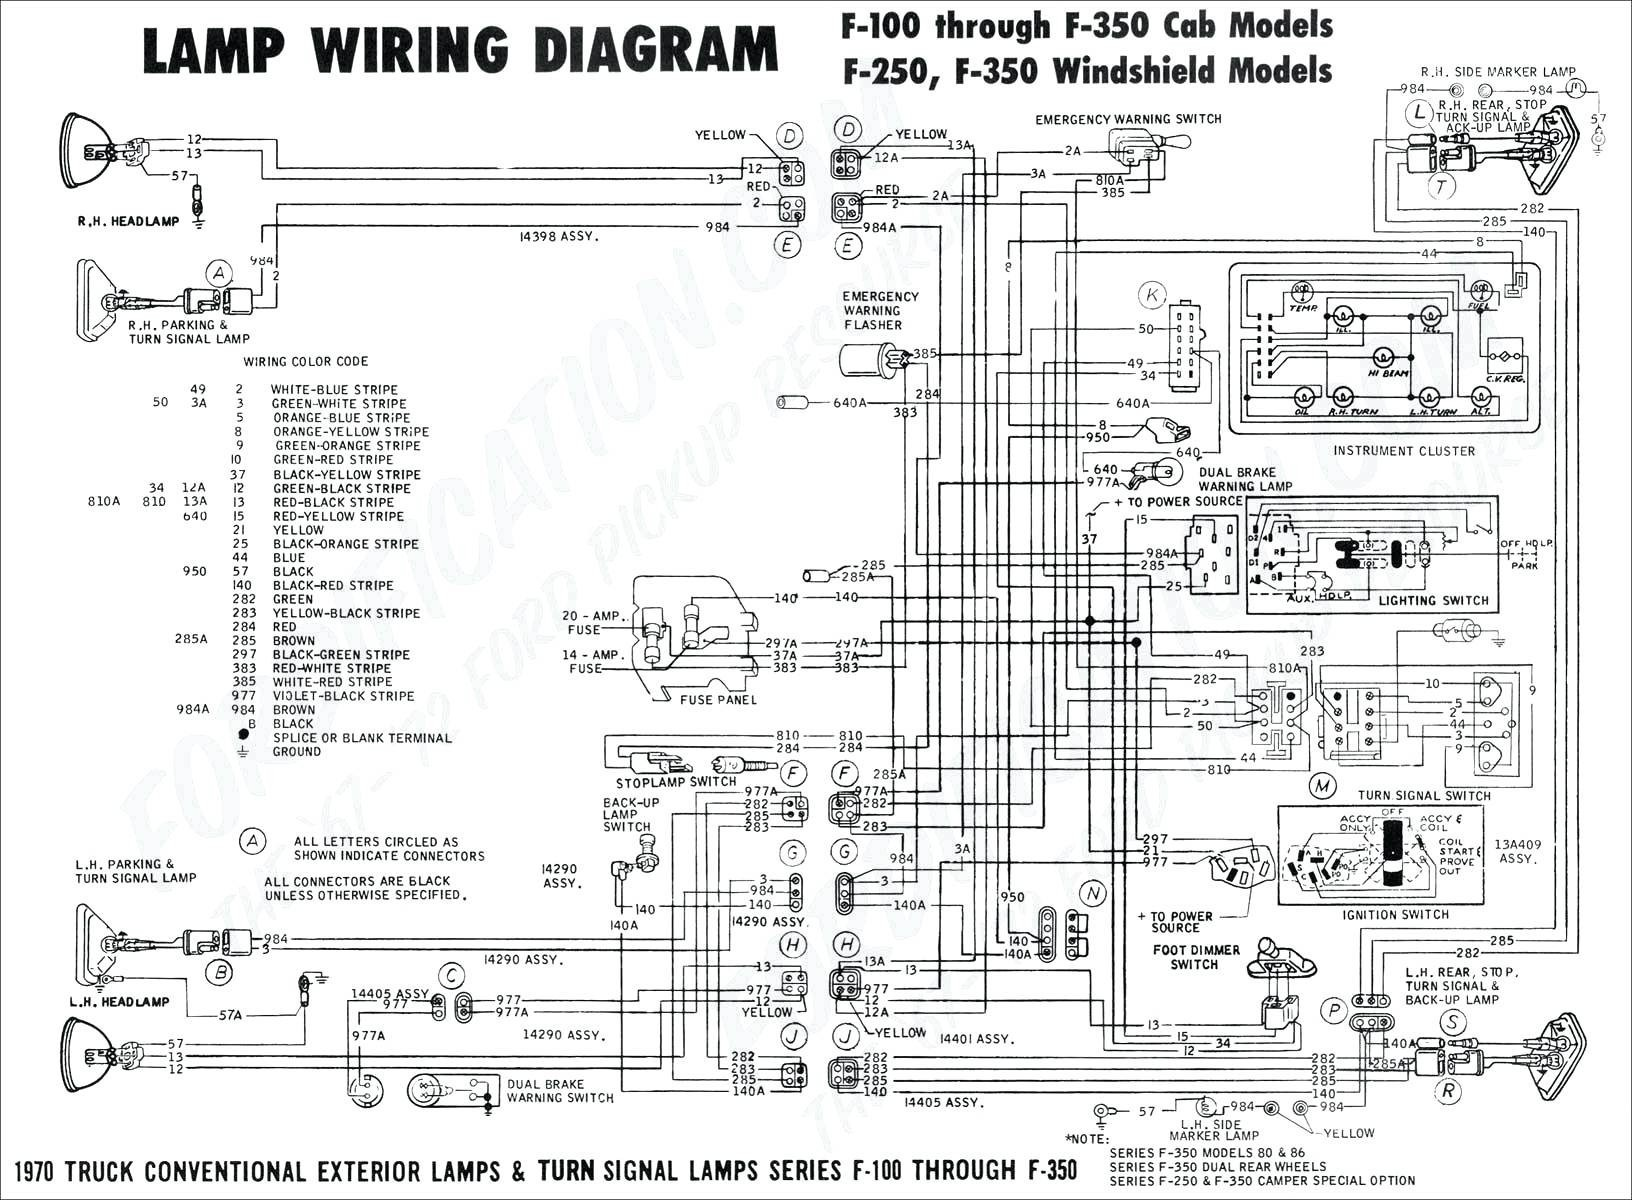 1995 ford F150 Parts Diagram 1997 ford F100 Wiring Wiring Diagram • Of 1995 ford F150 Parts Diagram 97 ford F 150 4 Way Trailer Wiring Diagram Data Wiring Diagrams •